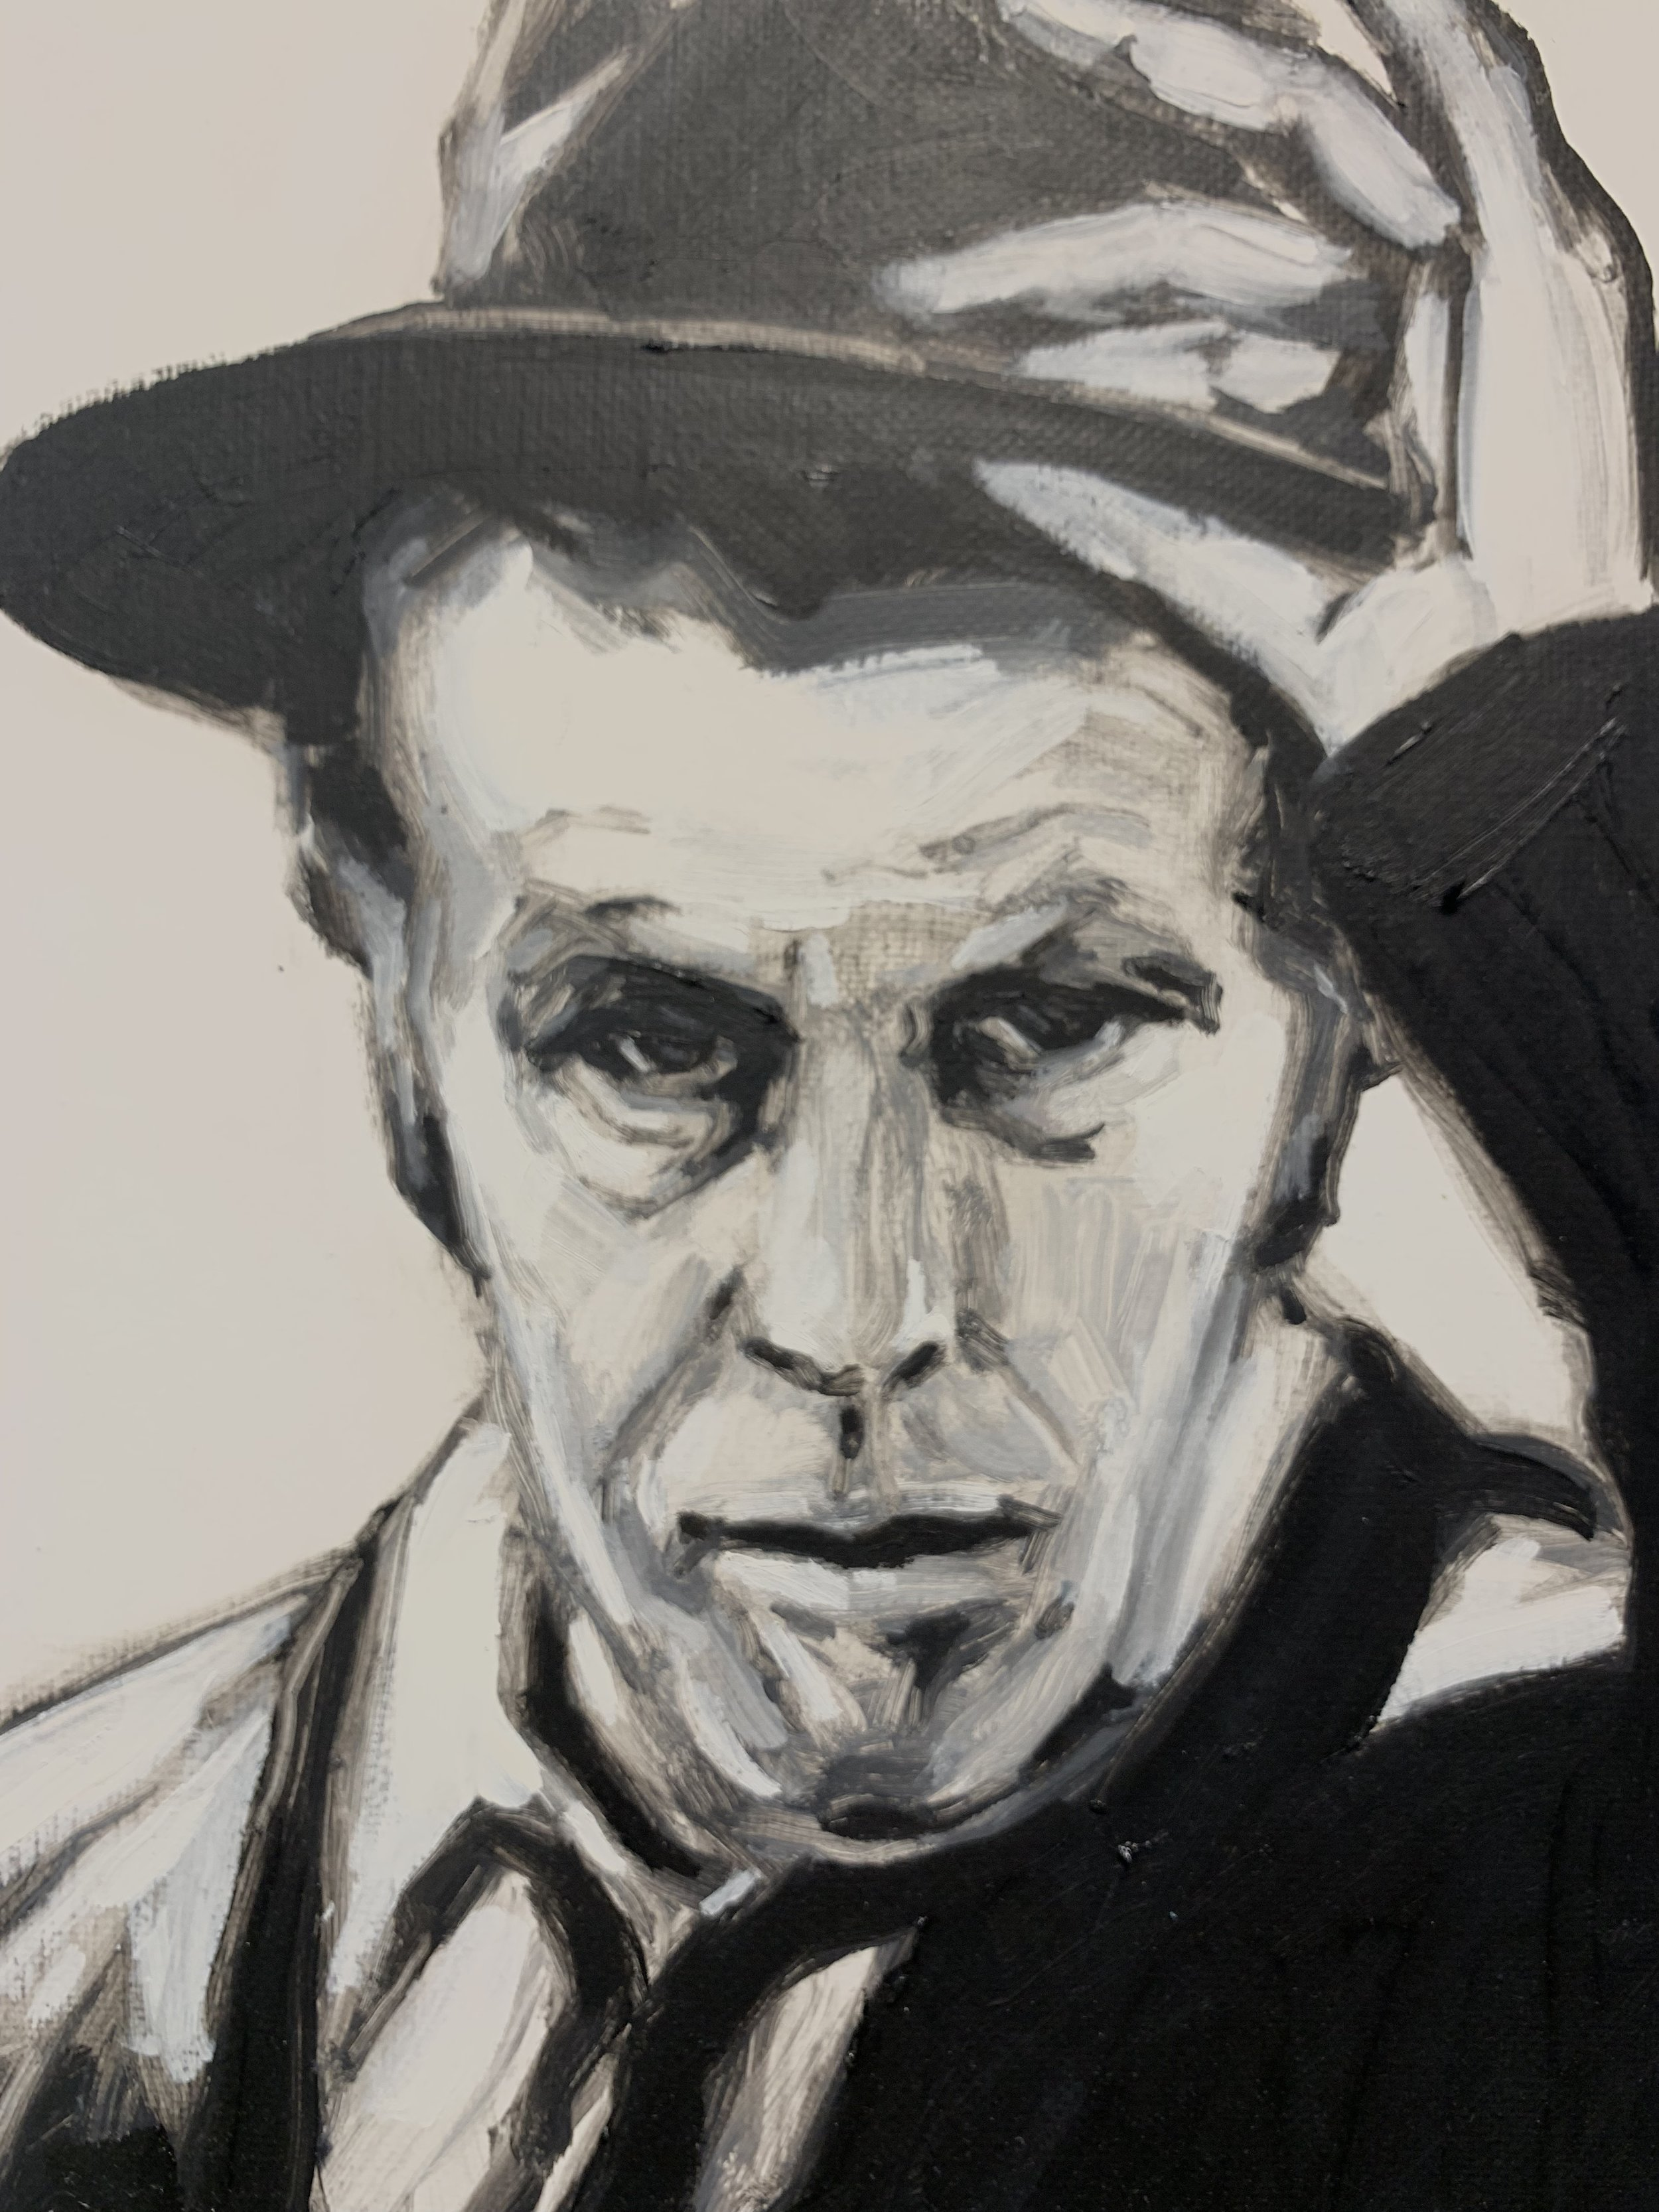 Tom Waits, by Thomas Cale